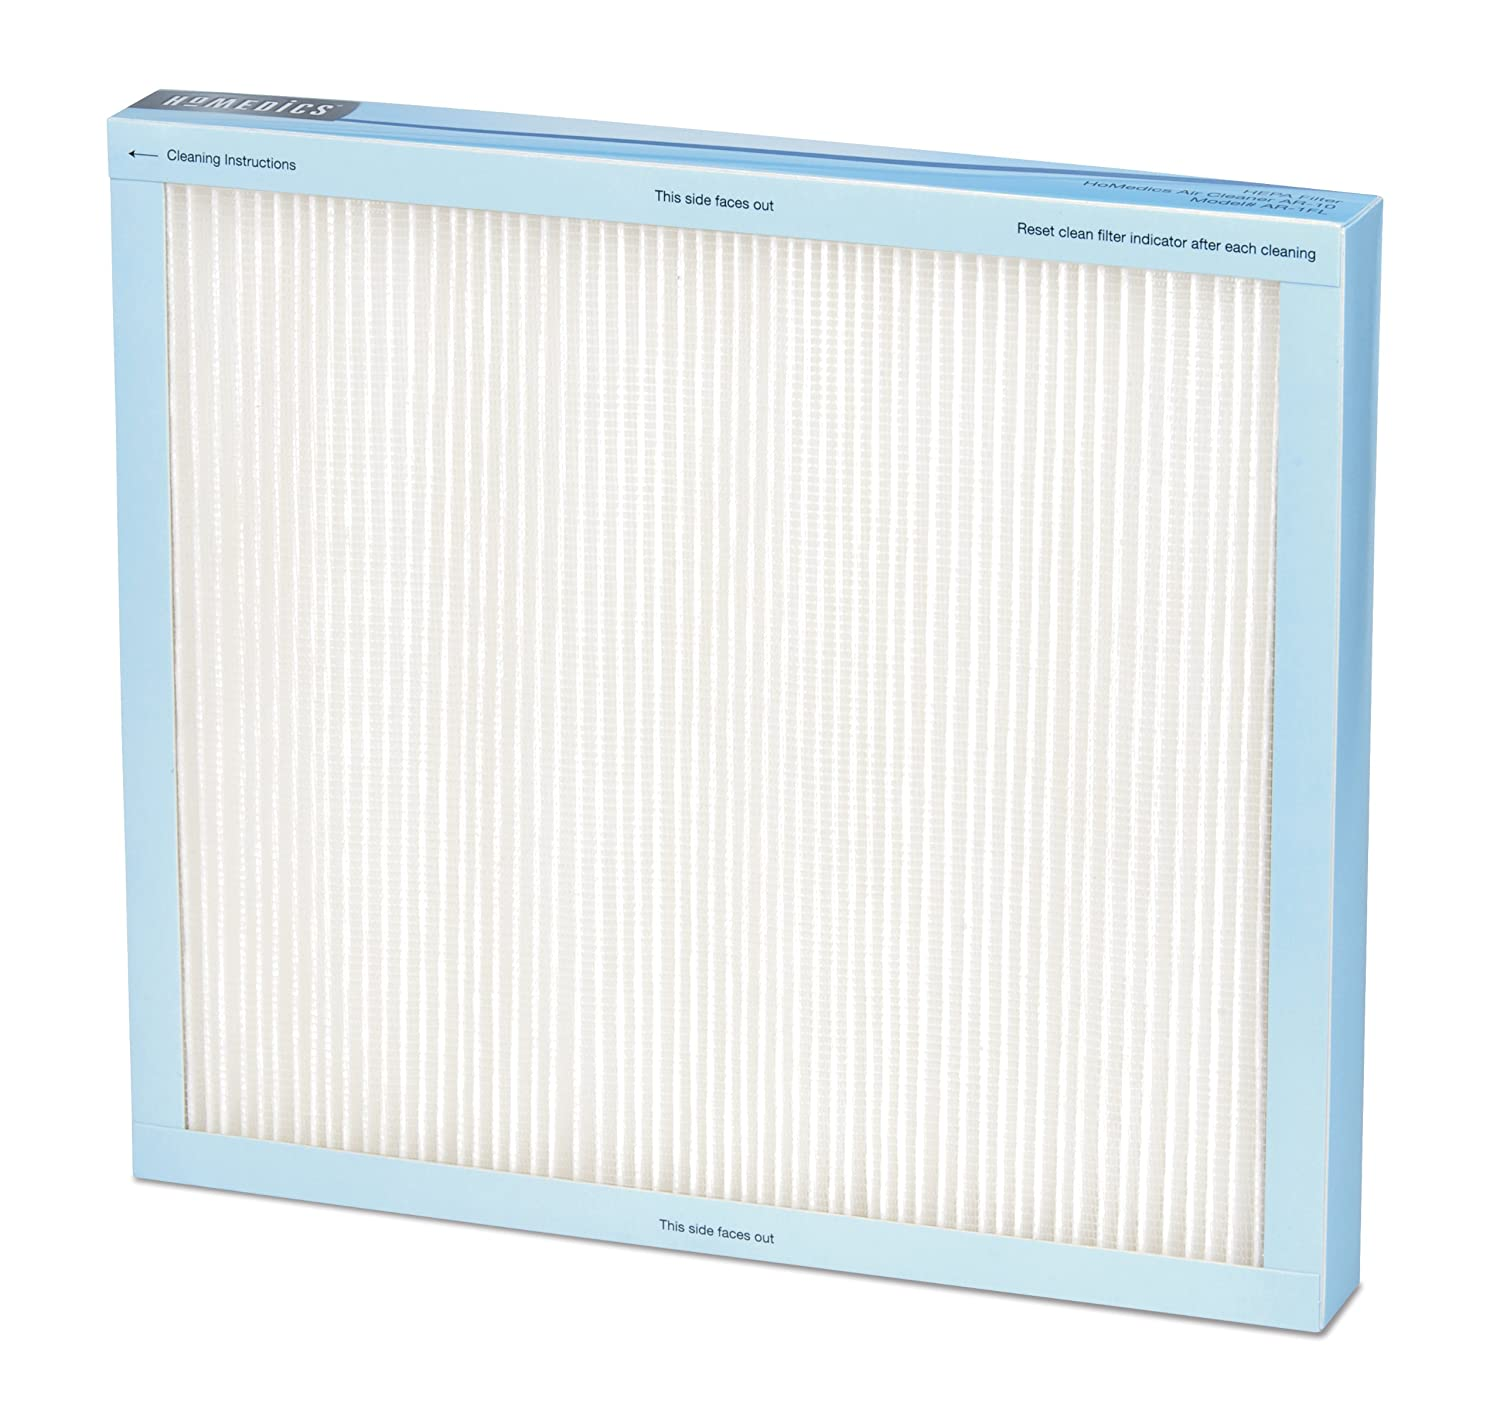 Homedics AR-1FL HEPA Replacment Filter for Homedics Ar-10 Air Purifier FKA Brands Ltd AR-1FLA-EU